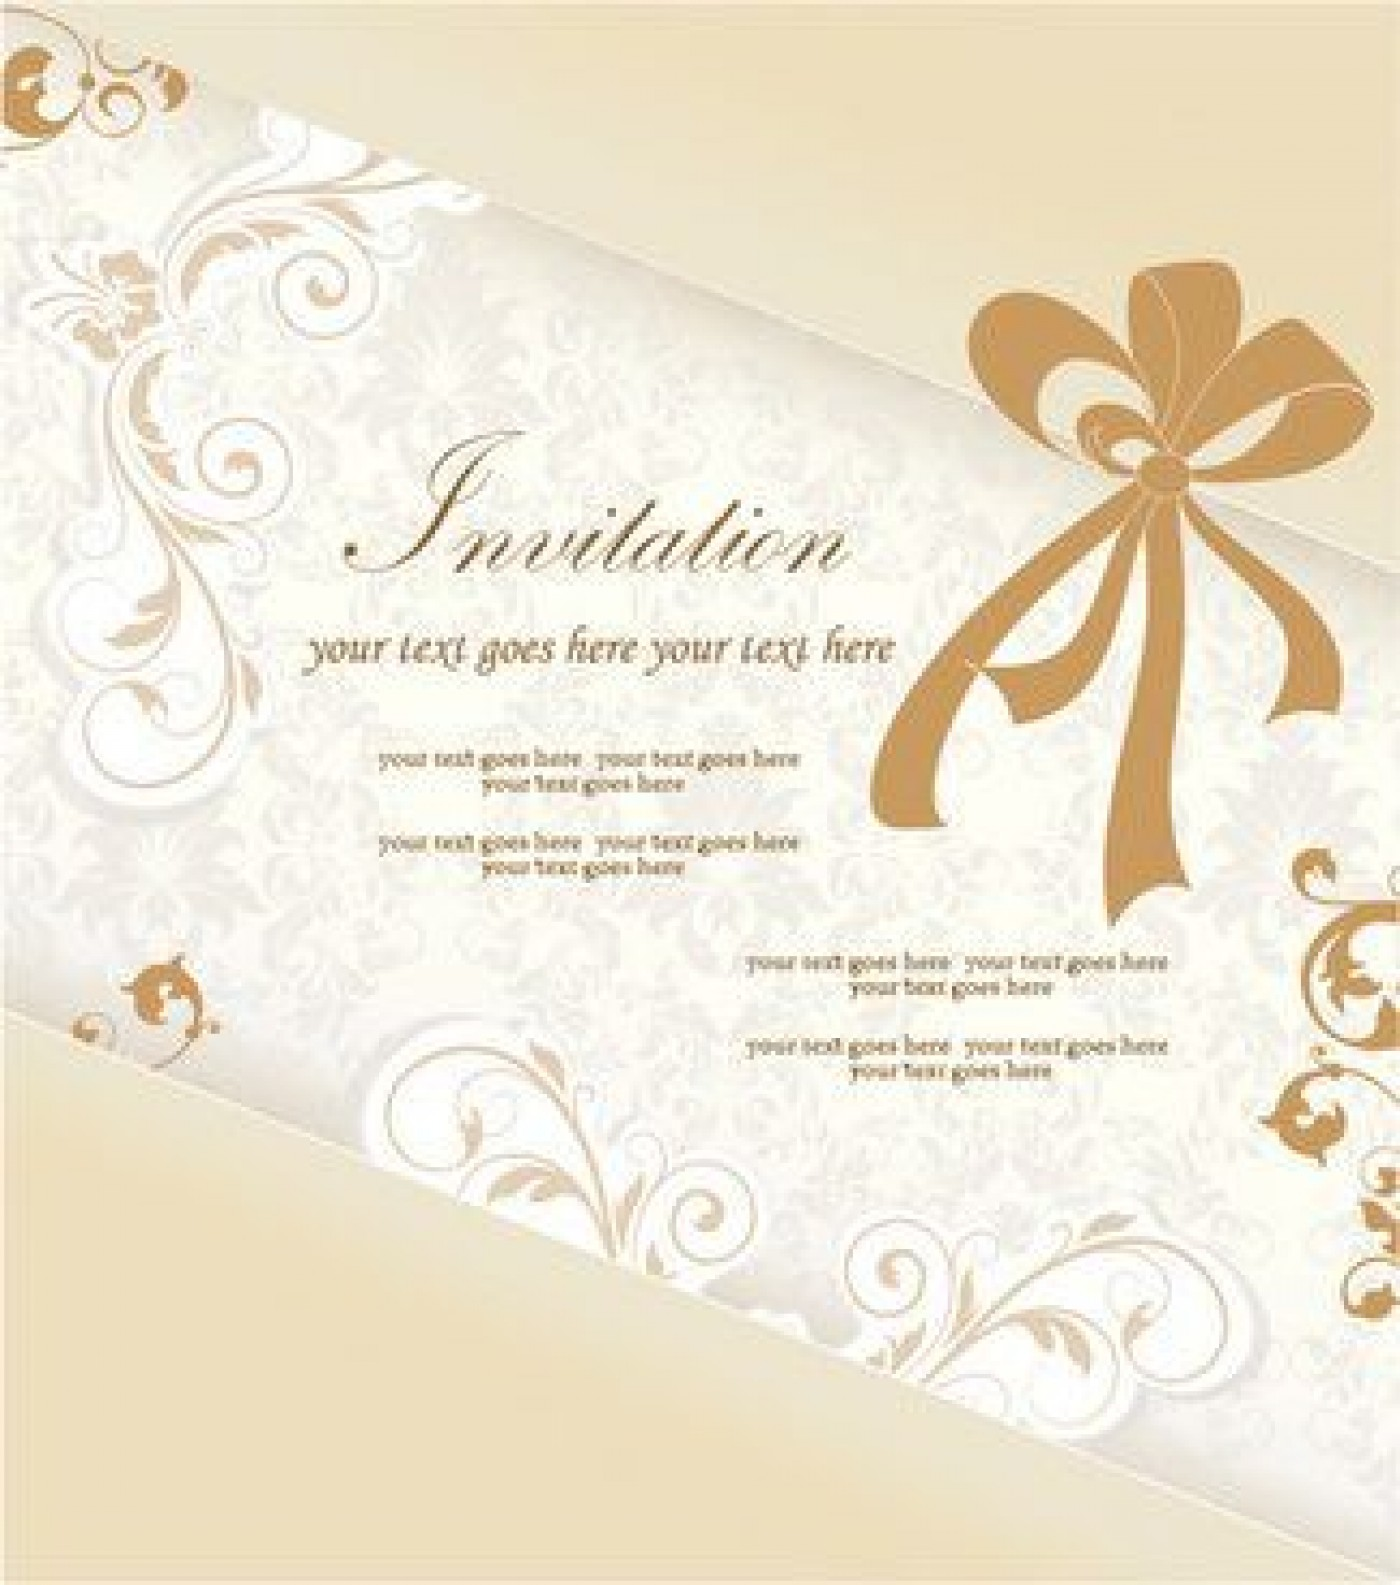 008 Astounding Free Download Invitation Card Design Concept  Birthday Party Blank Wedding Template Software1400